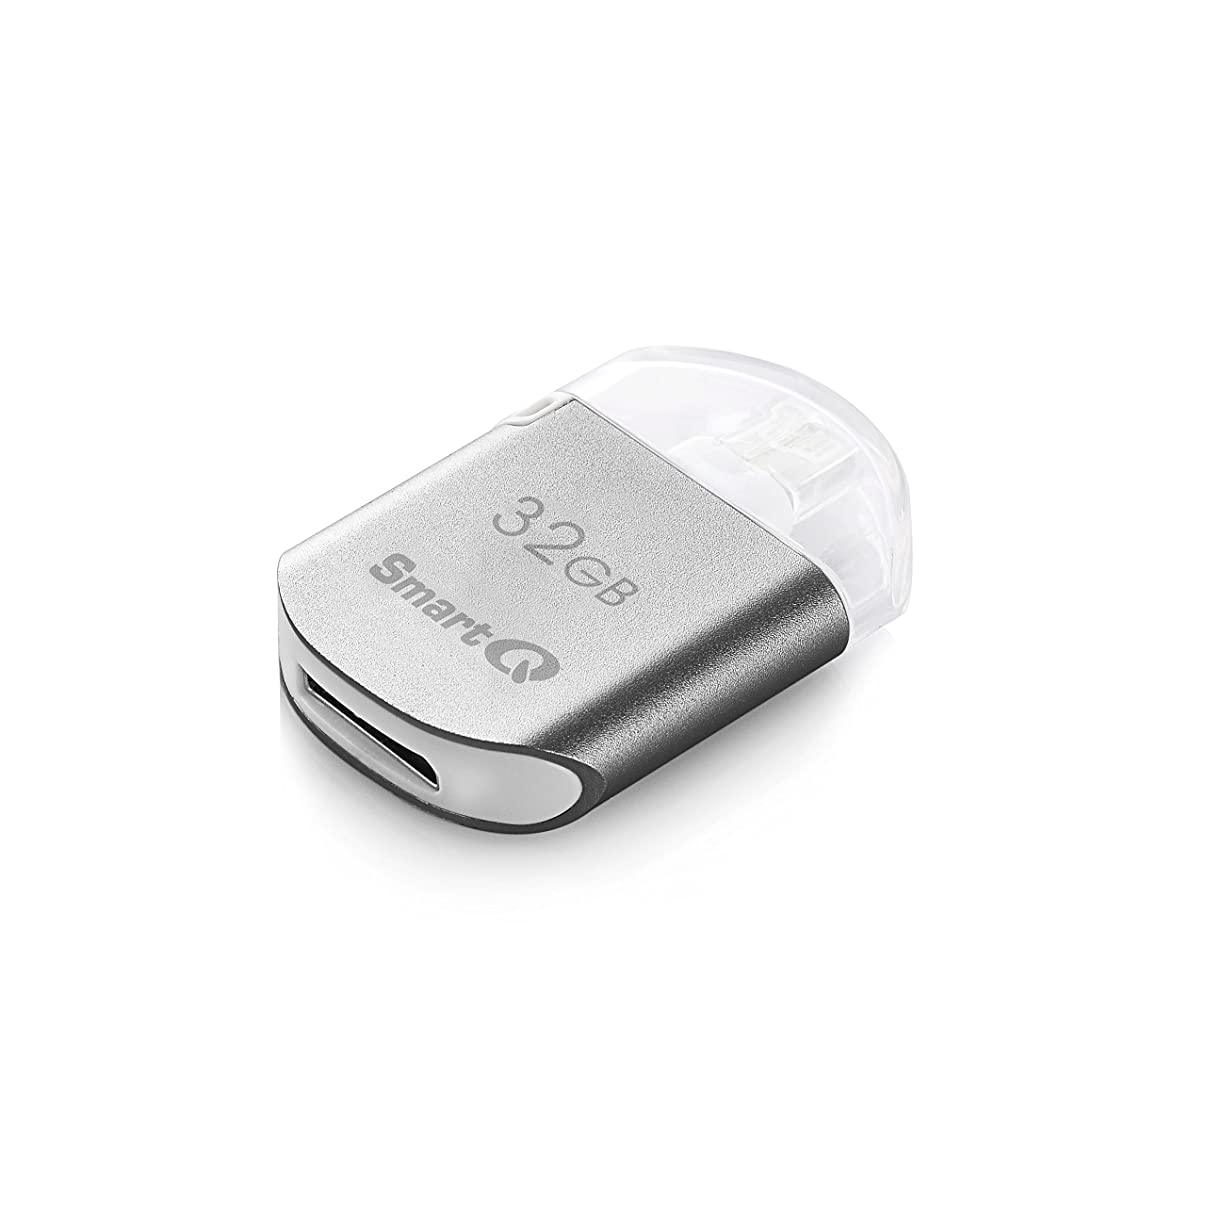 SmartQ AU606-32G MFI Certified USB Flash Drive with OTG Lightning Connector for Apple Products, for External Storage Memory Expansion Backup 32GB